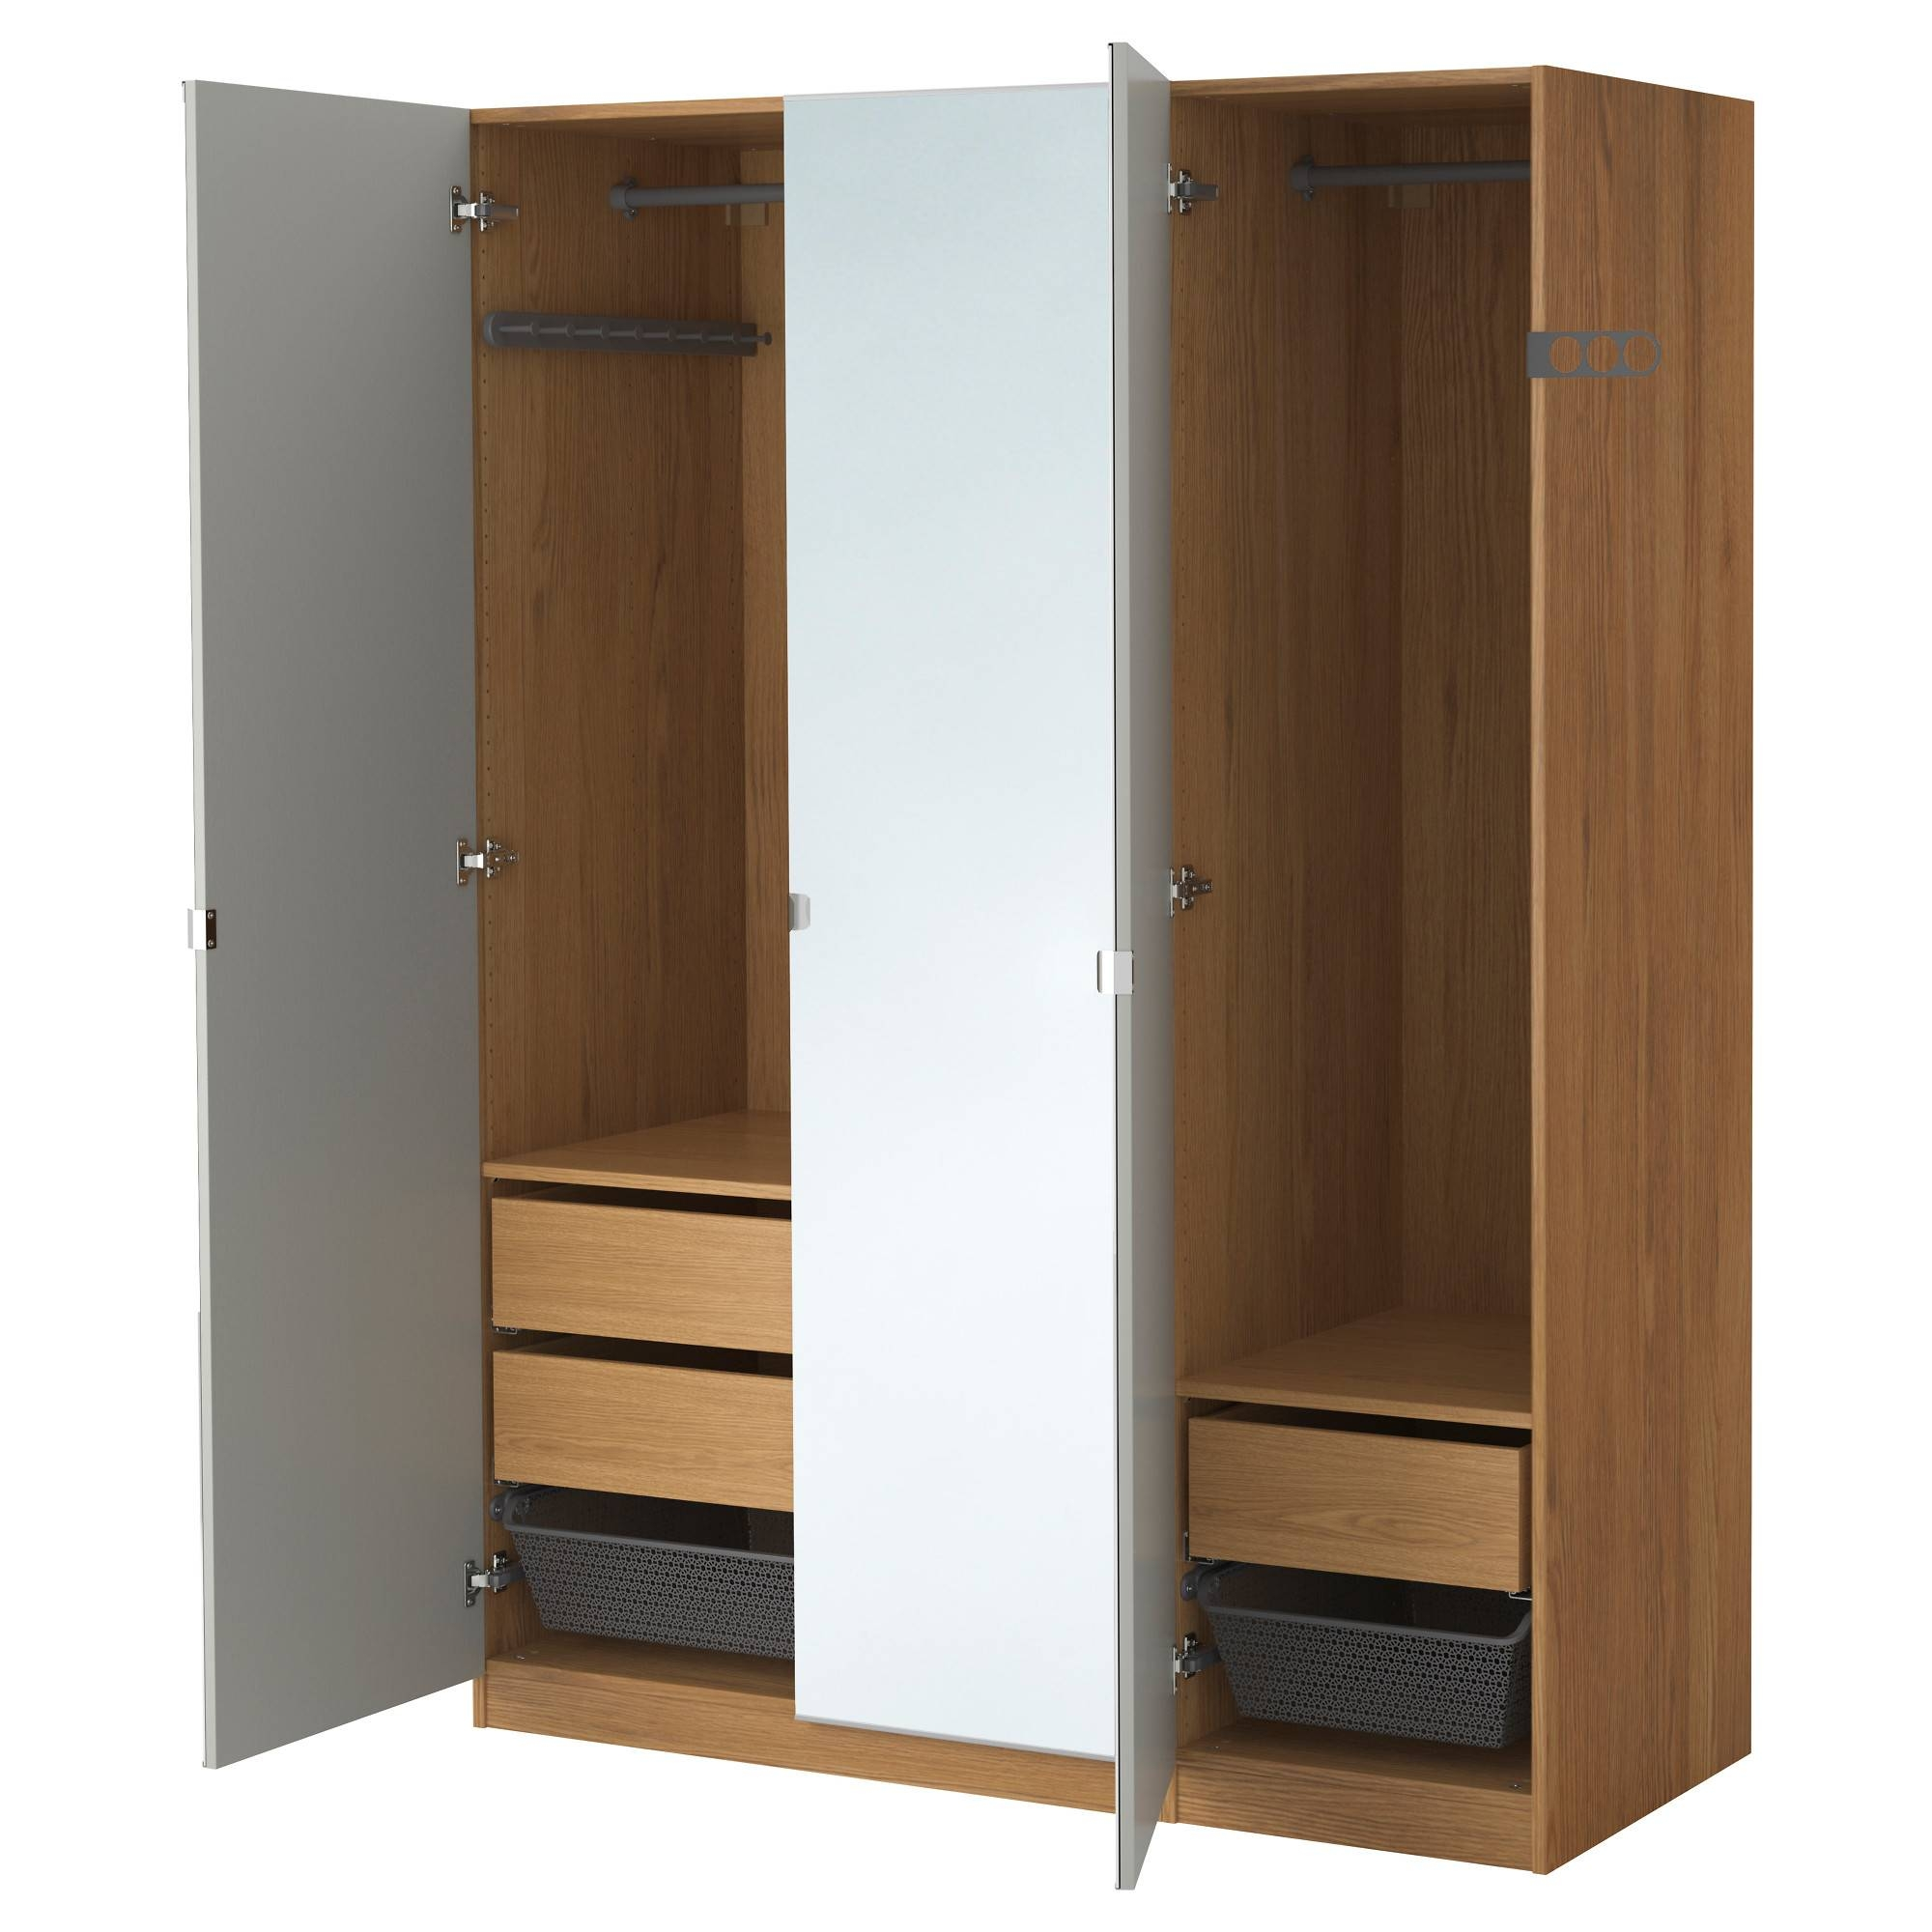 Pax Wardrobe Oak Effect/vikedal Mirror Glass 150X60X201 Cm - Ikea inside Oak Mirrored Wardrobes (Image 8 of 15)